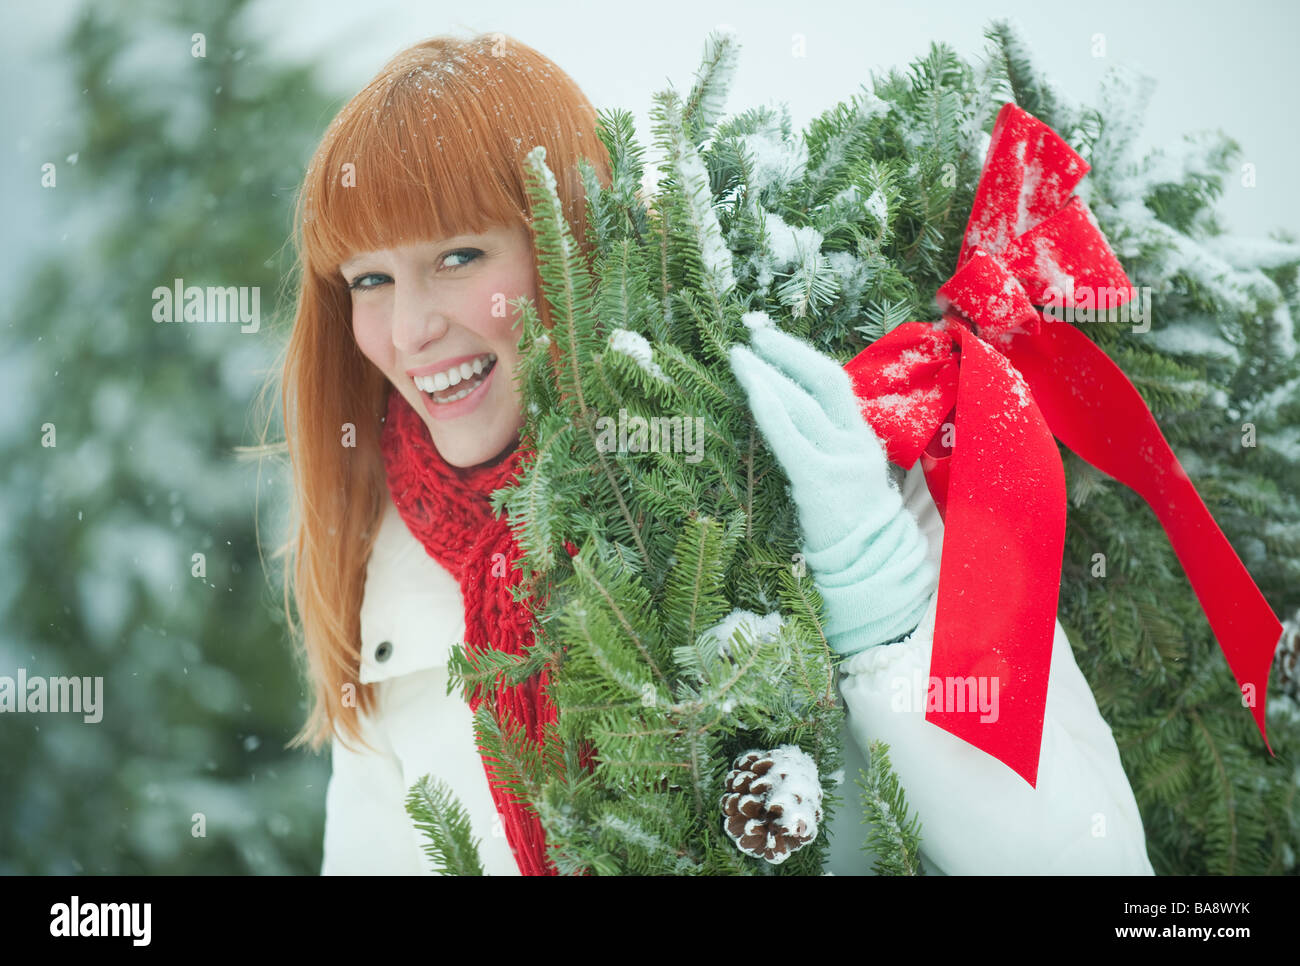 frau mit adventskranz stockfoto bild 23552919 alamy. Black Bedroom Furniture Sets. Home Design Ideas